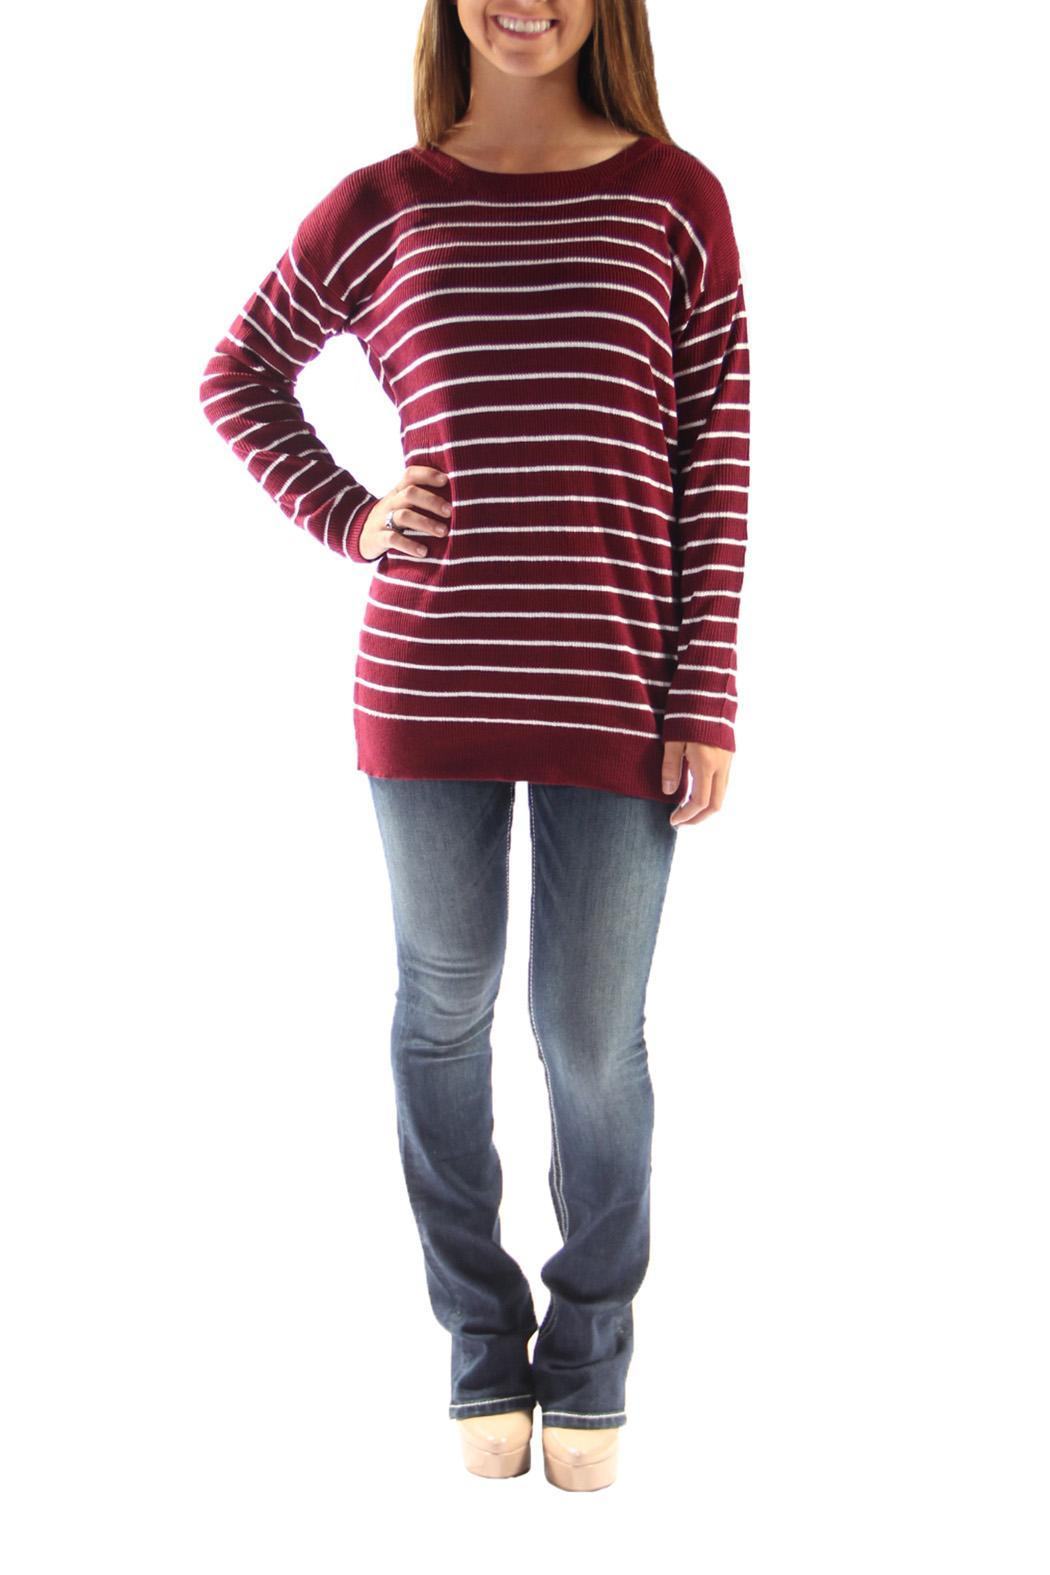 Double Zero Burgundy Striped Sweater from Arkansas by Martin's ...